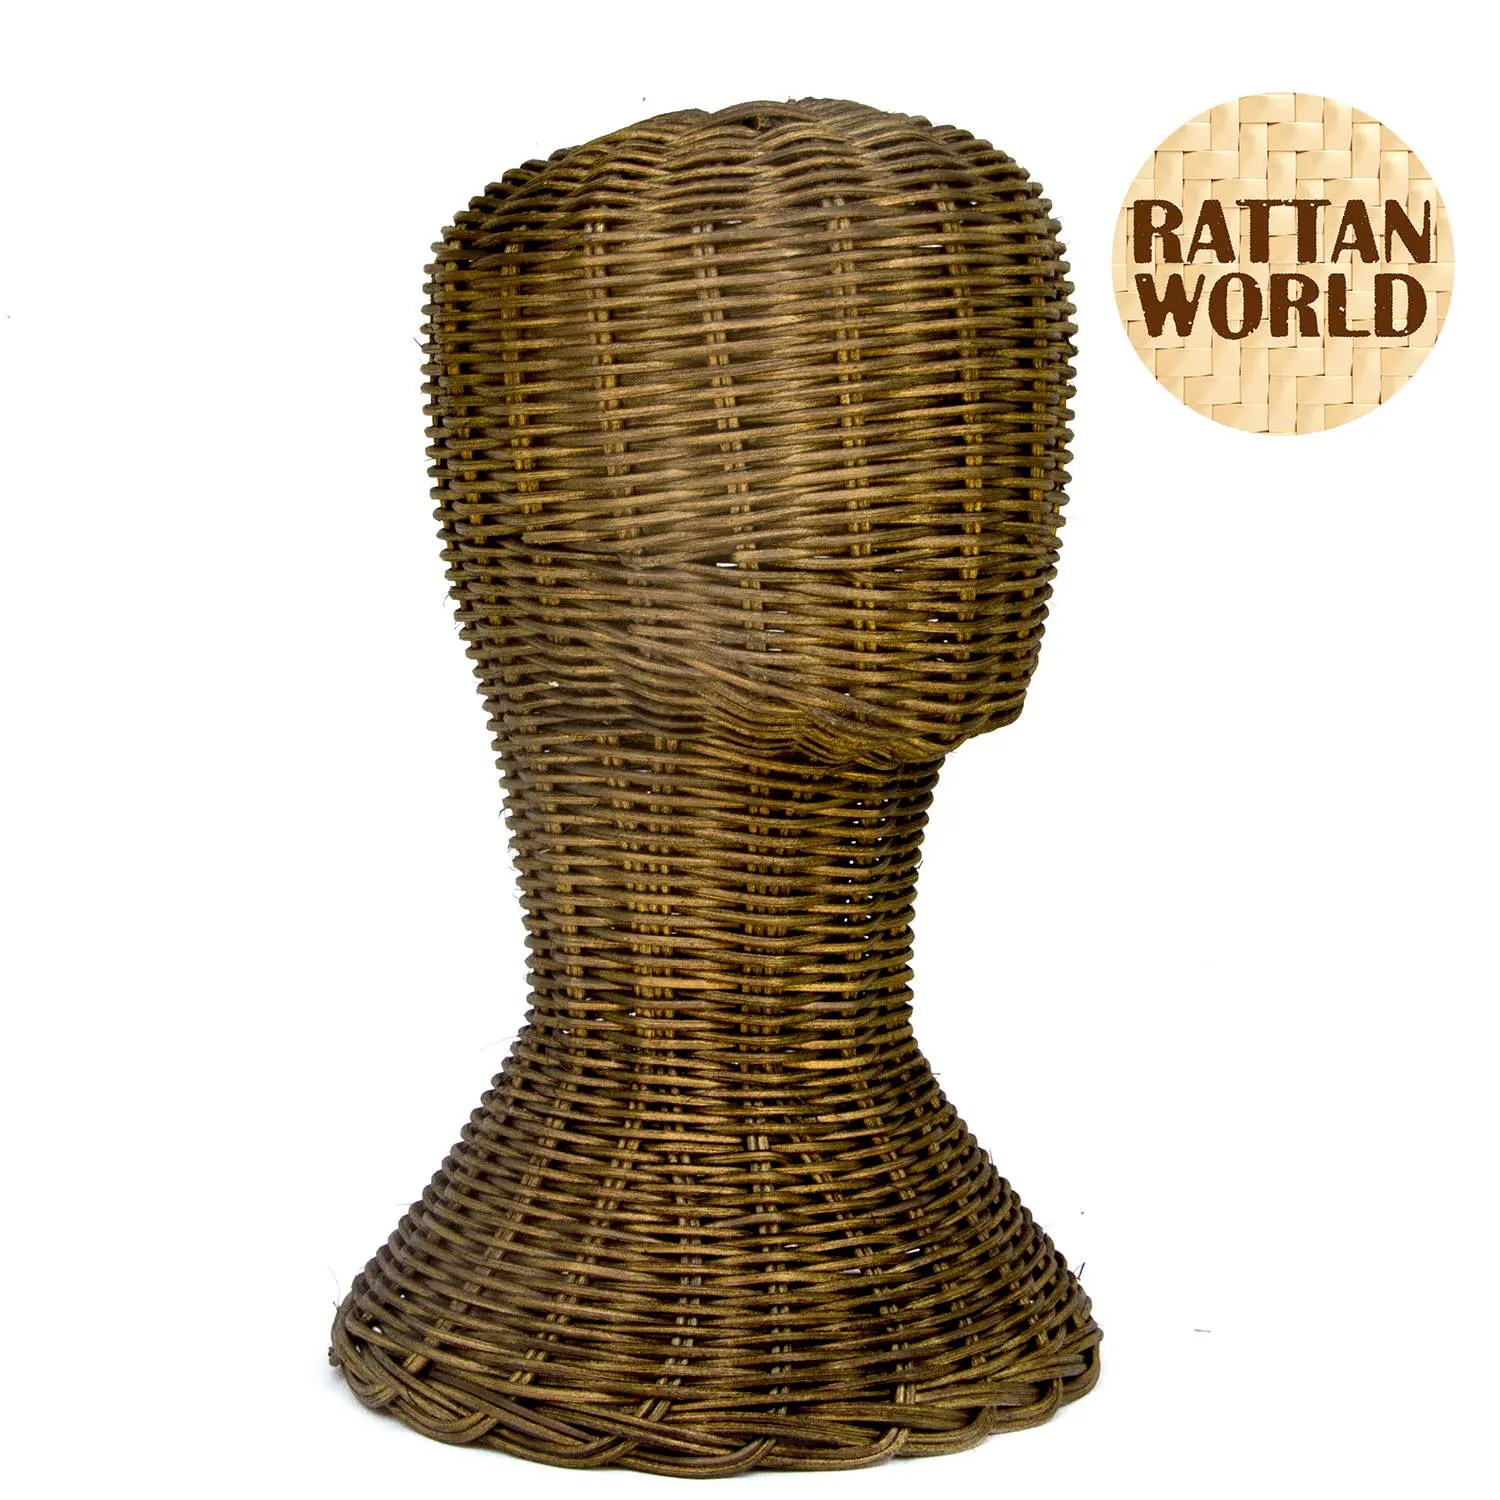 mannequin chair stand is there a hickory outlet rattan unisex head handicraft display bronze etsy image 0